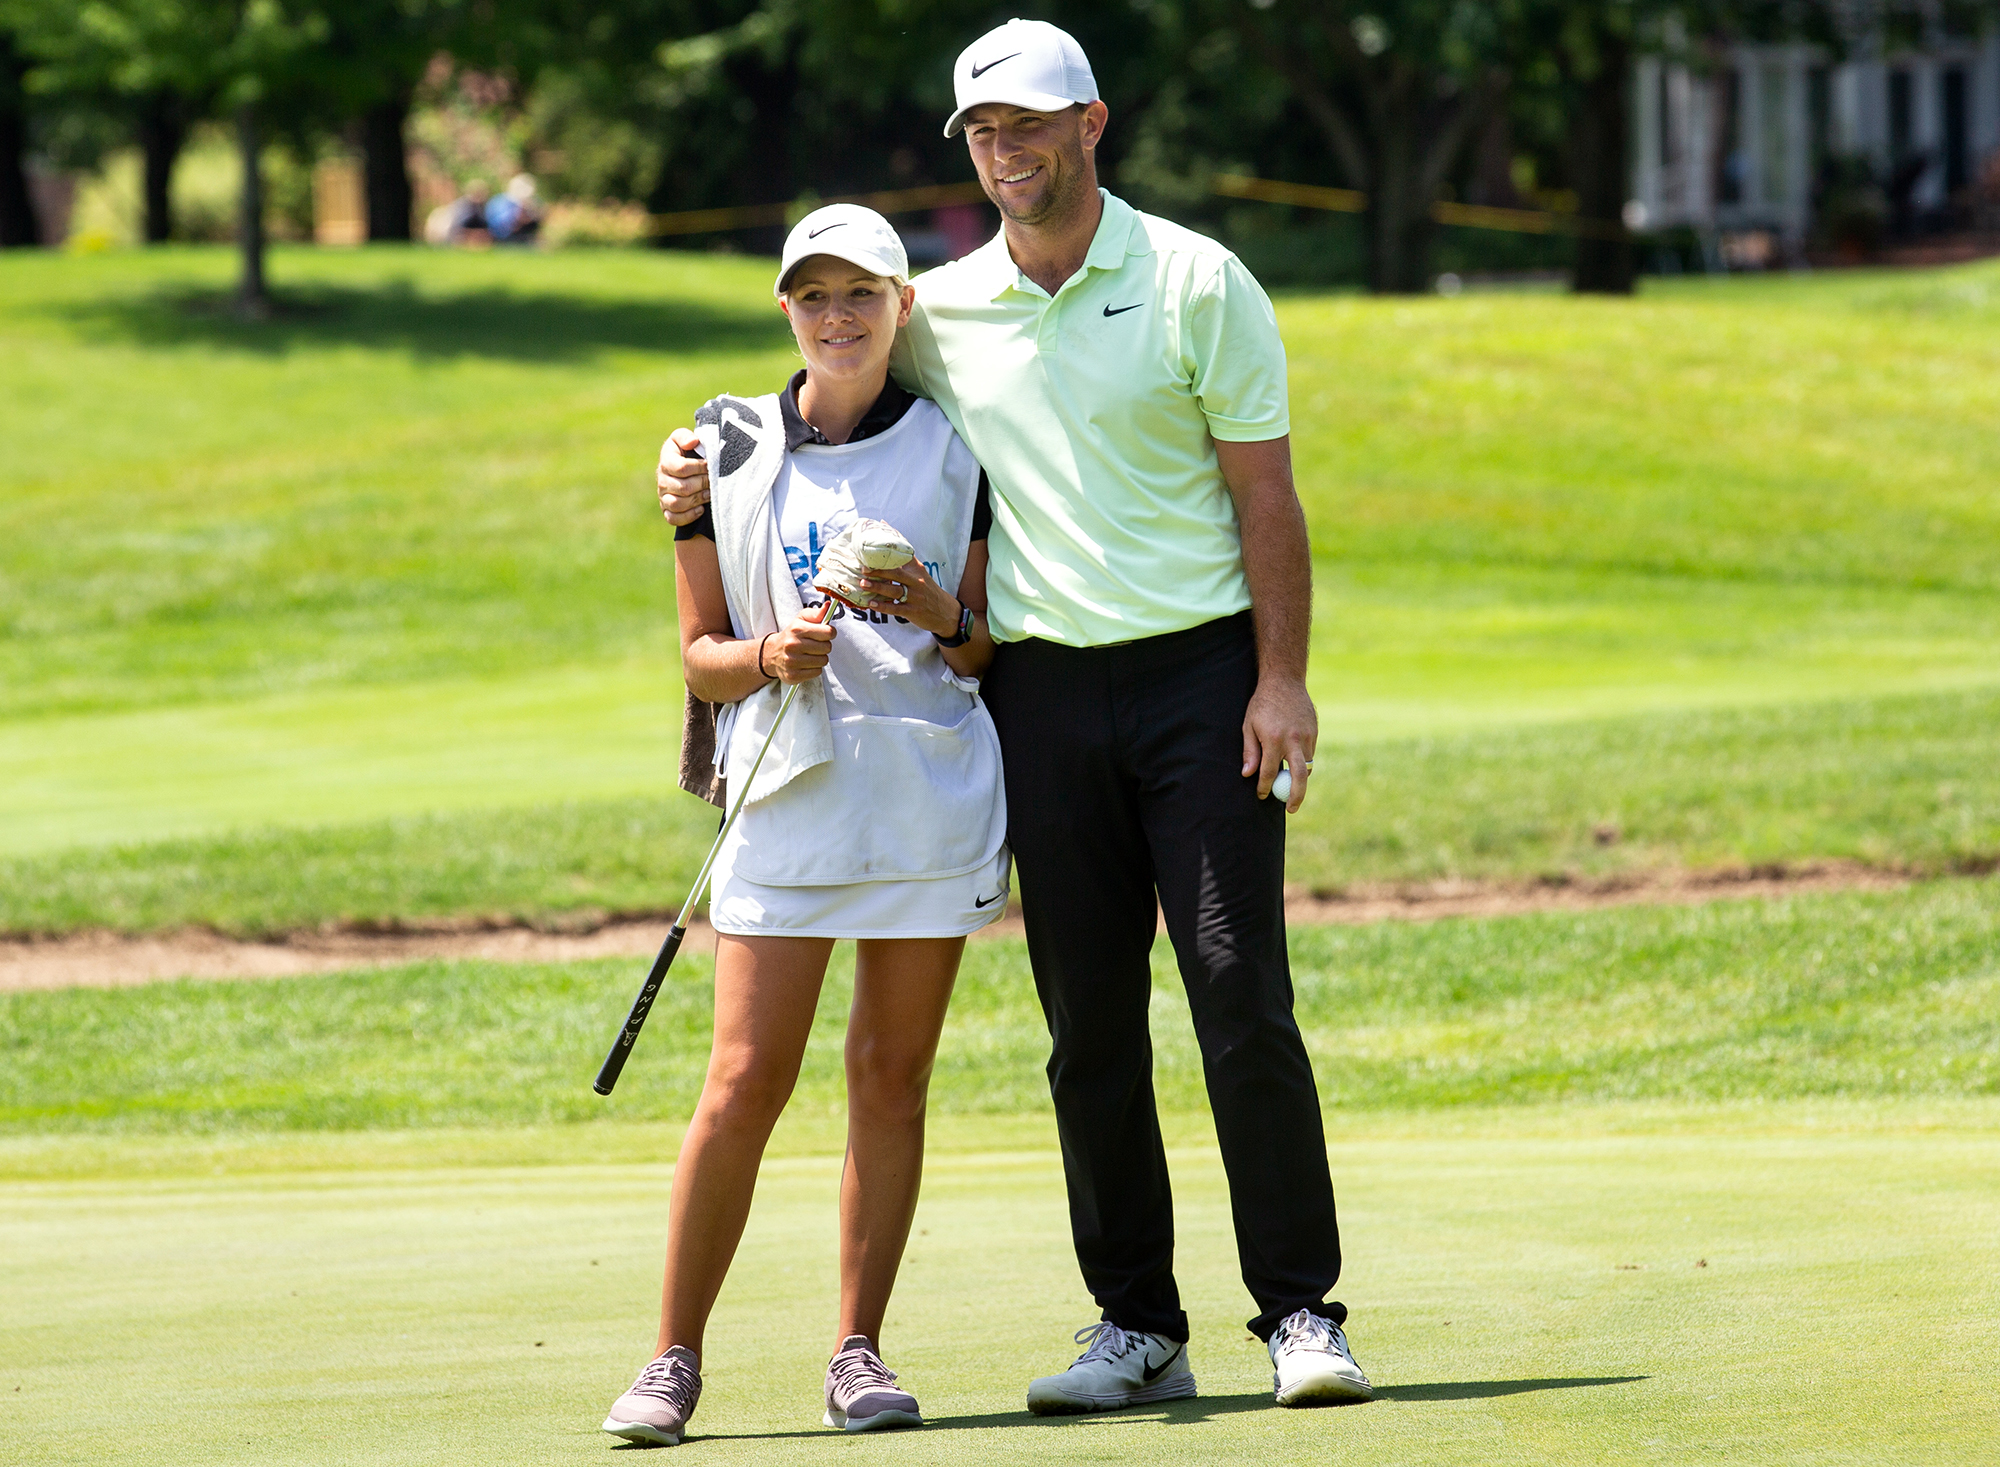 Luke Guthrie hugs his wife, Kaitlyn, who caddied for him, after he finished his second round play at 6 under par at the Lincoln Land Championship Friday, June 29, 2018 at Panther Creek Country Club in Springfield, Ill. [Rich Saal/The State Journal-Register]